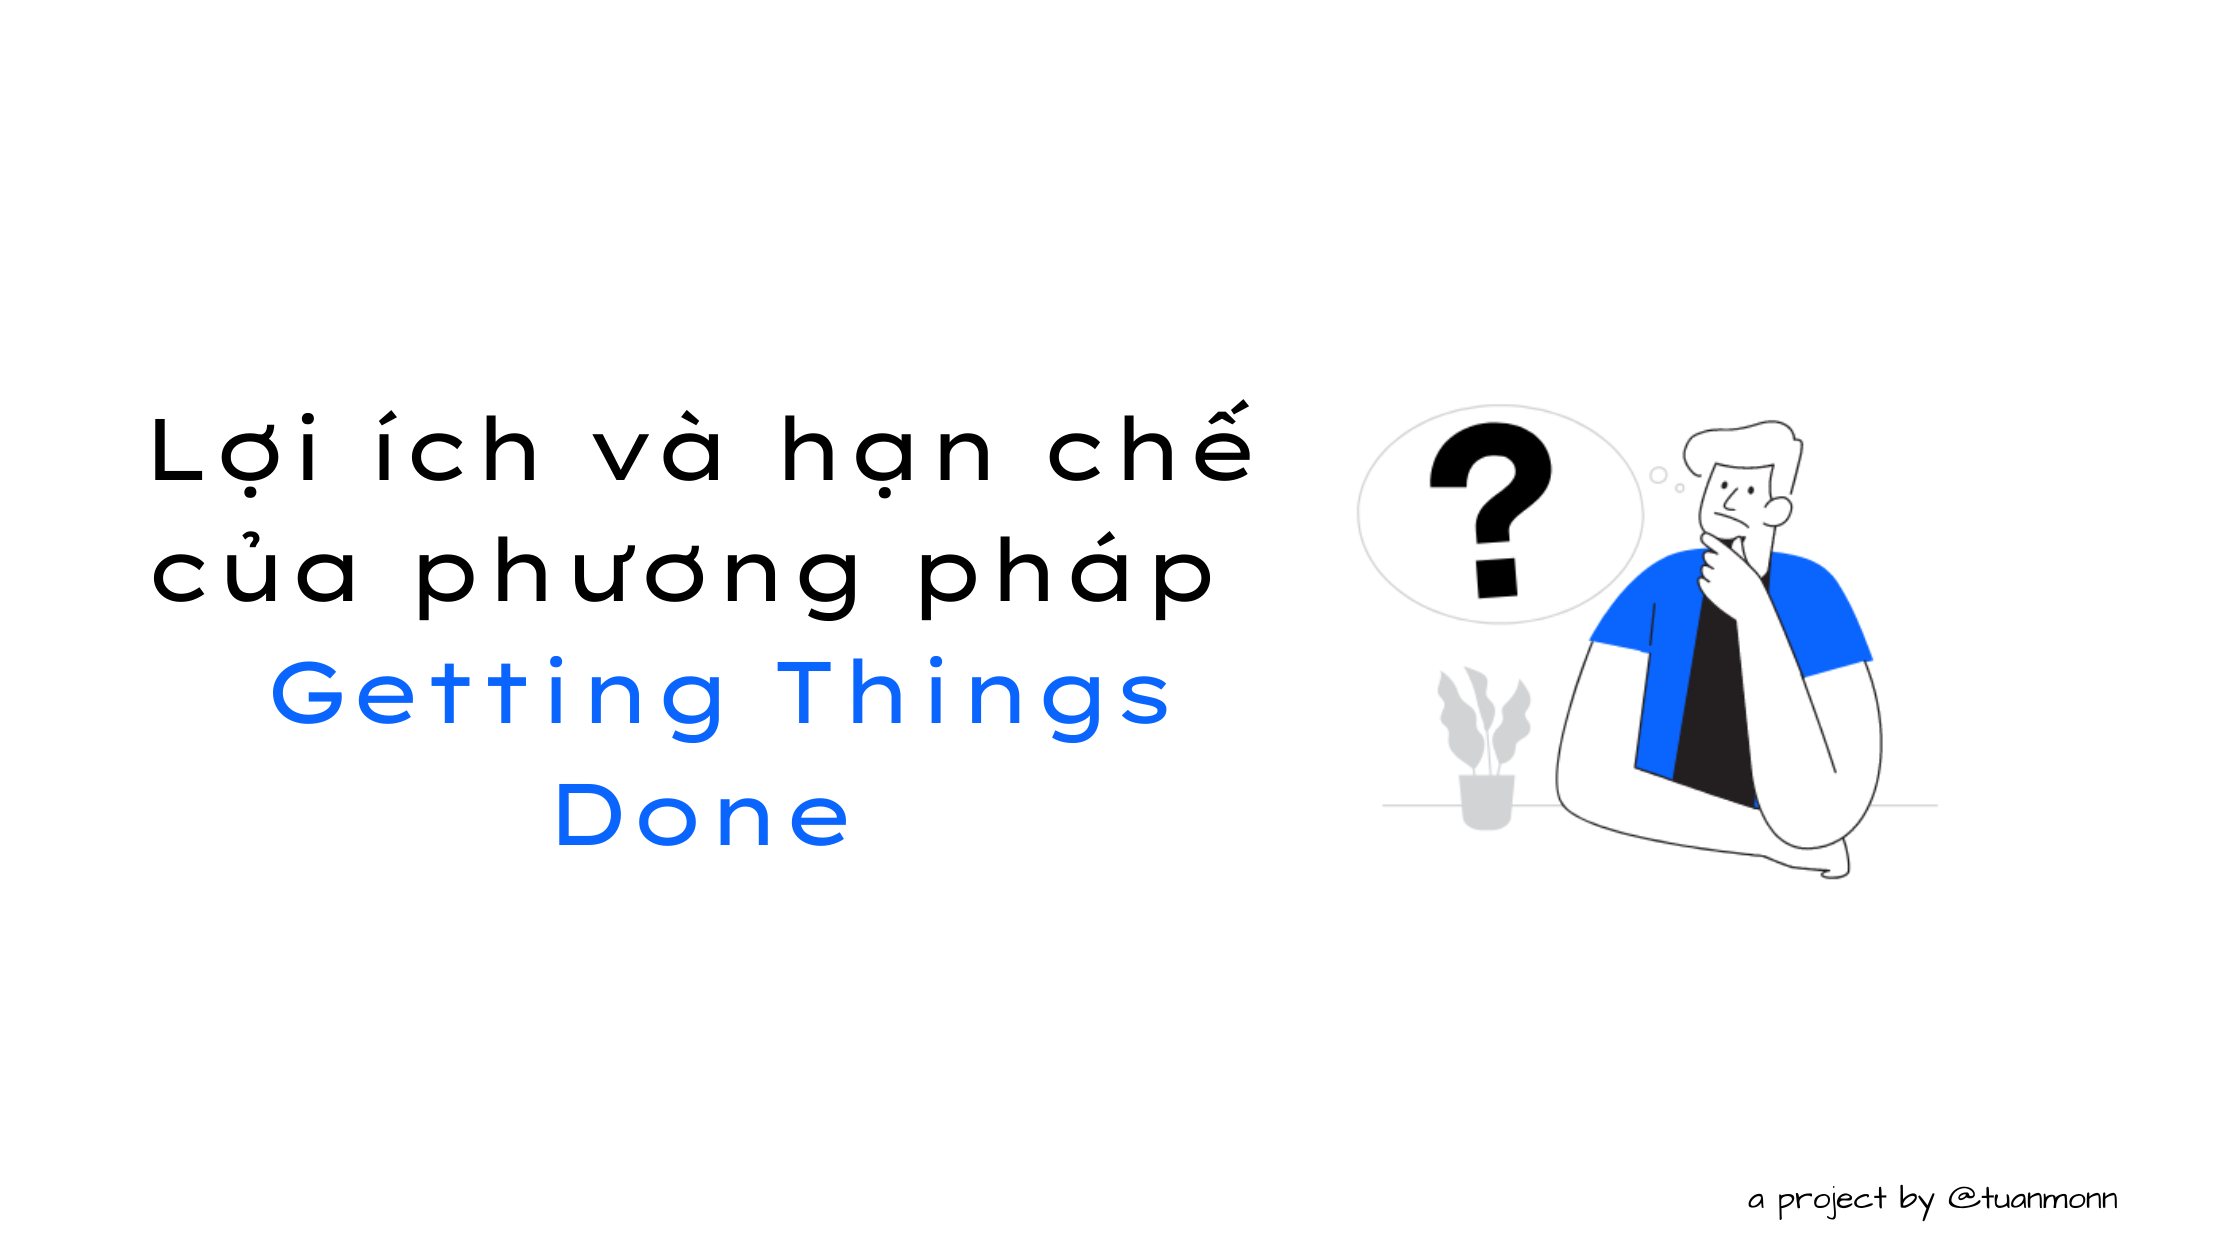 loi-ich-han-che-cua-getting-things-done